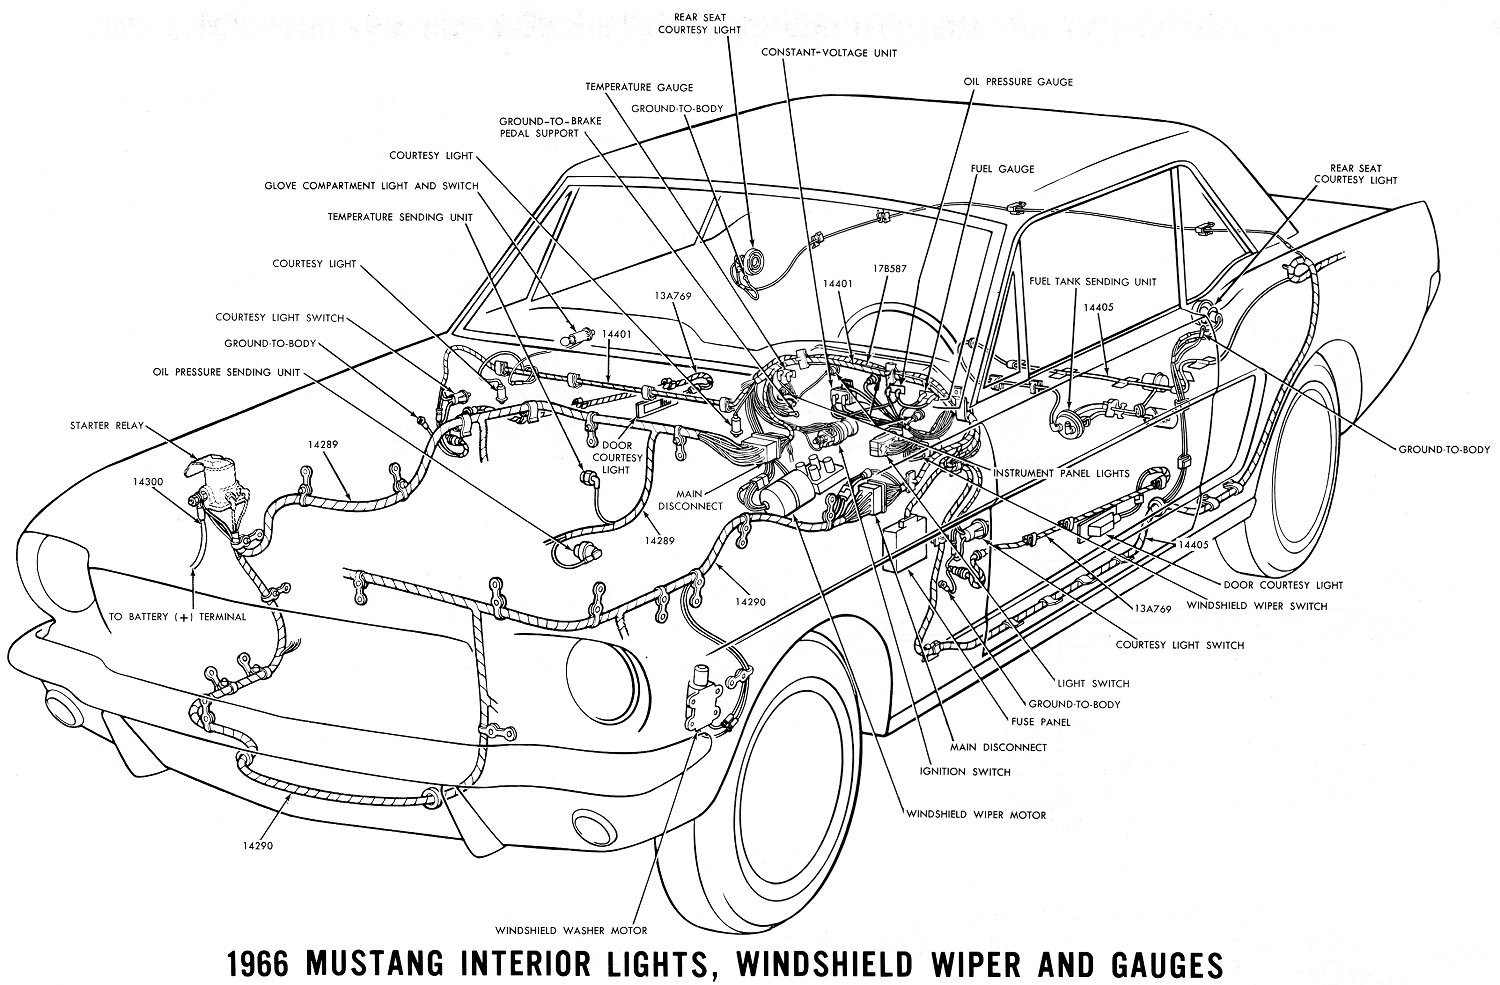 hight resolution of 1966 mustang interior lights windshield wiper and gauges schematic